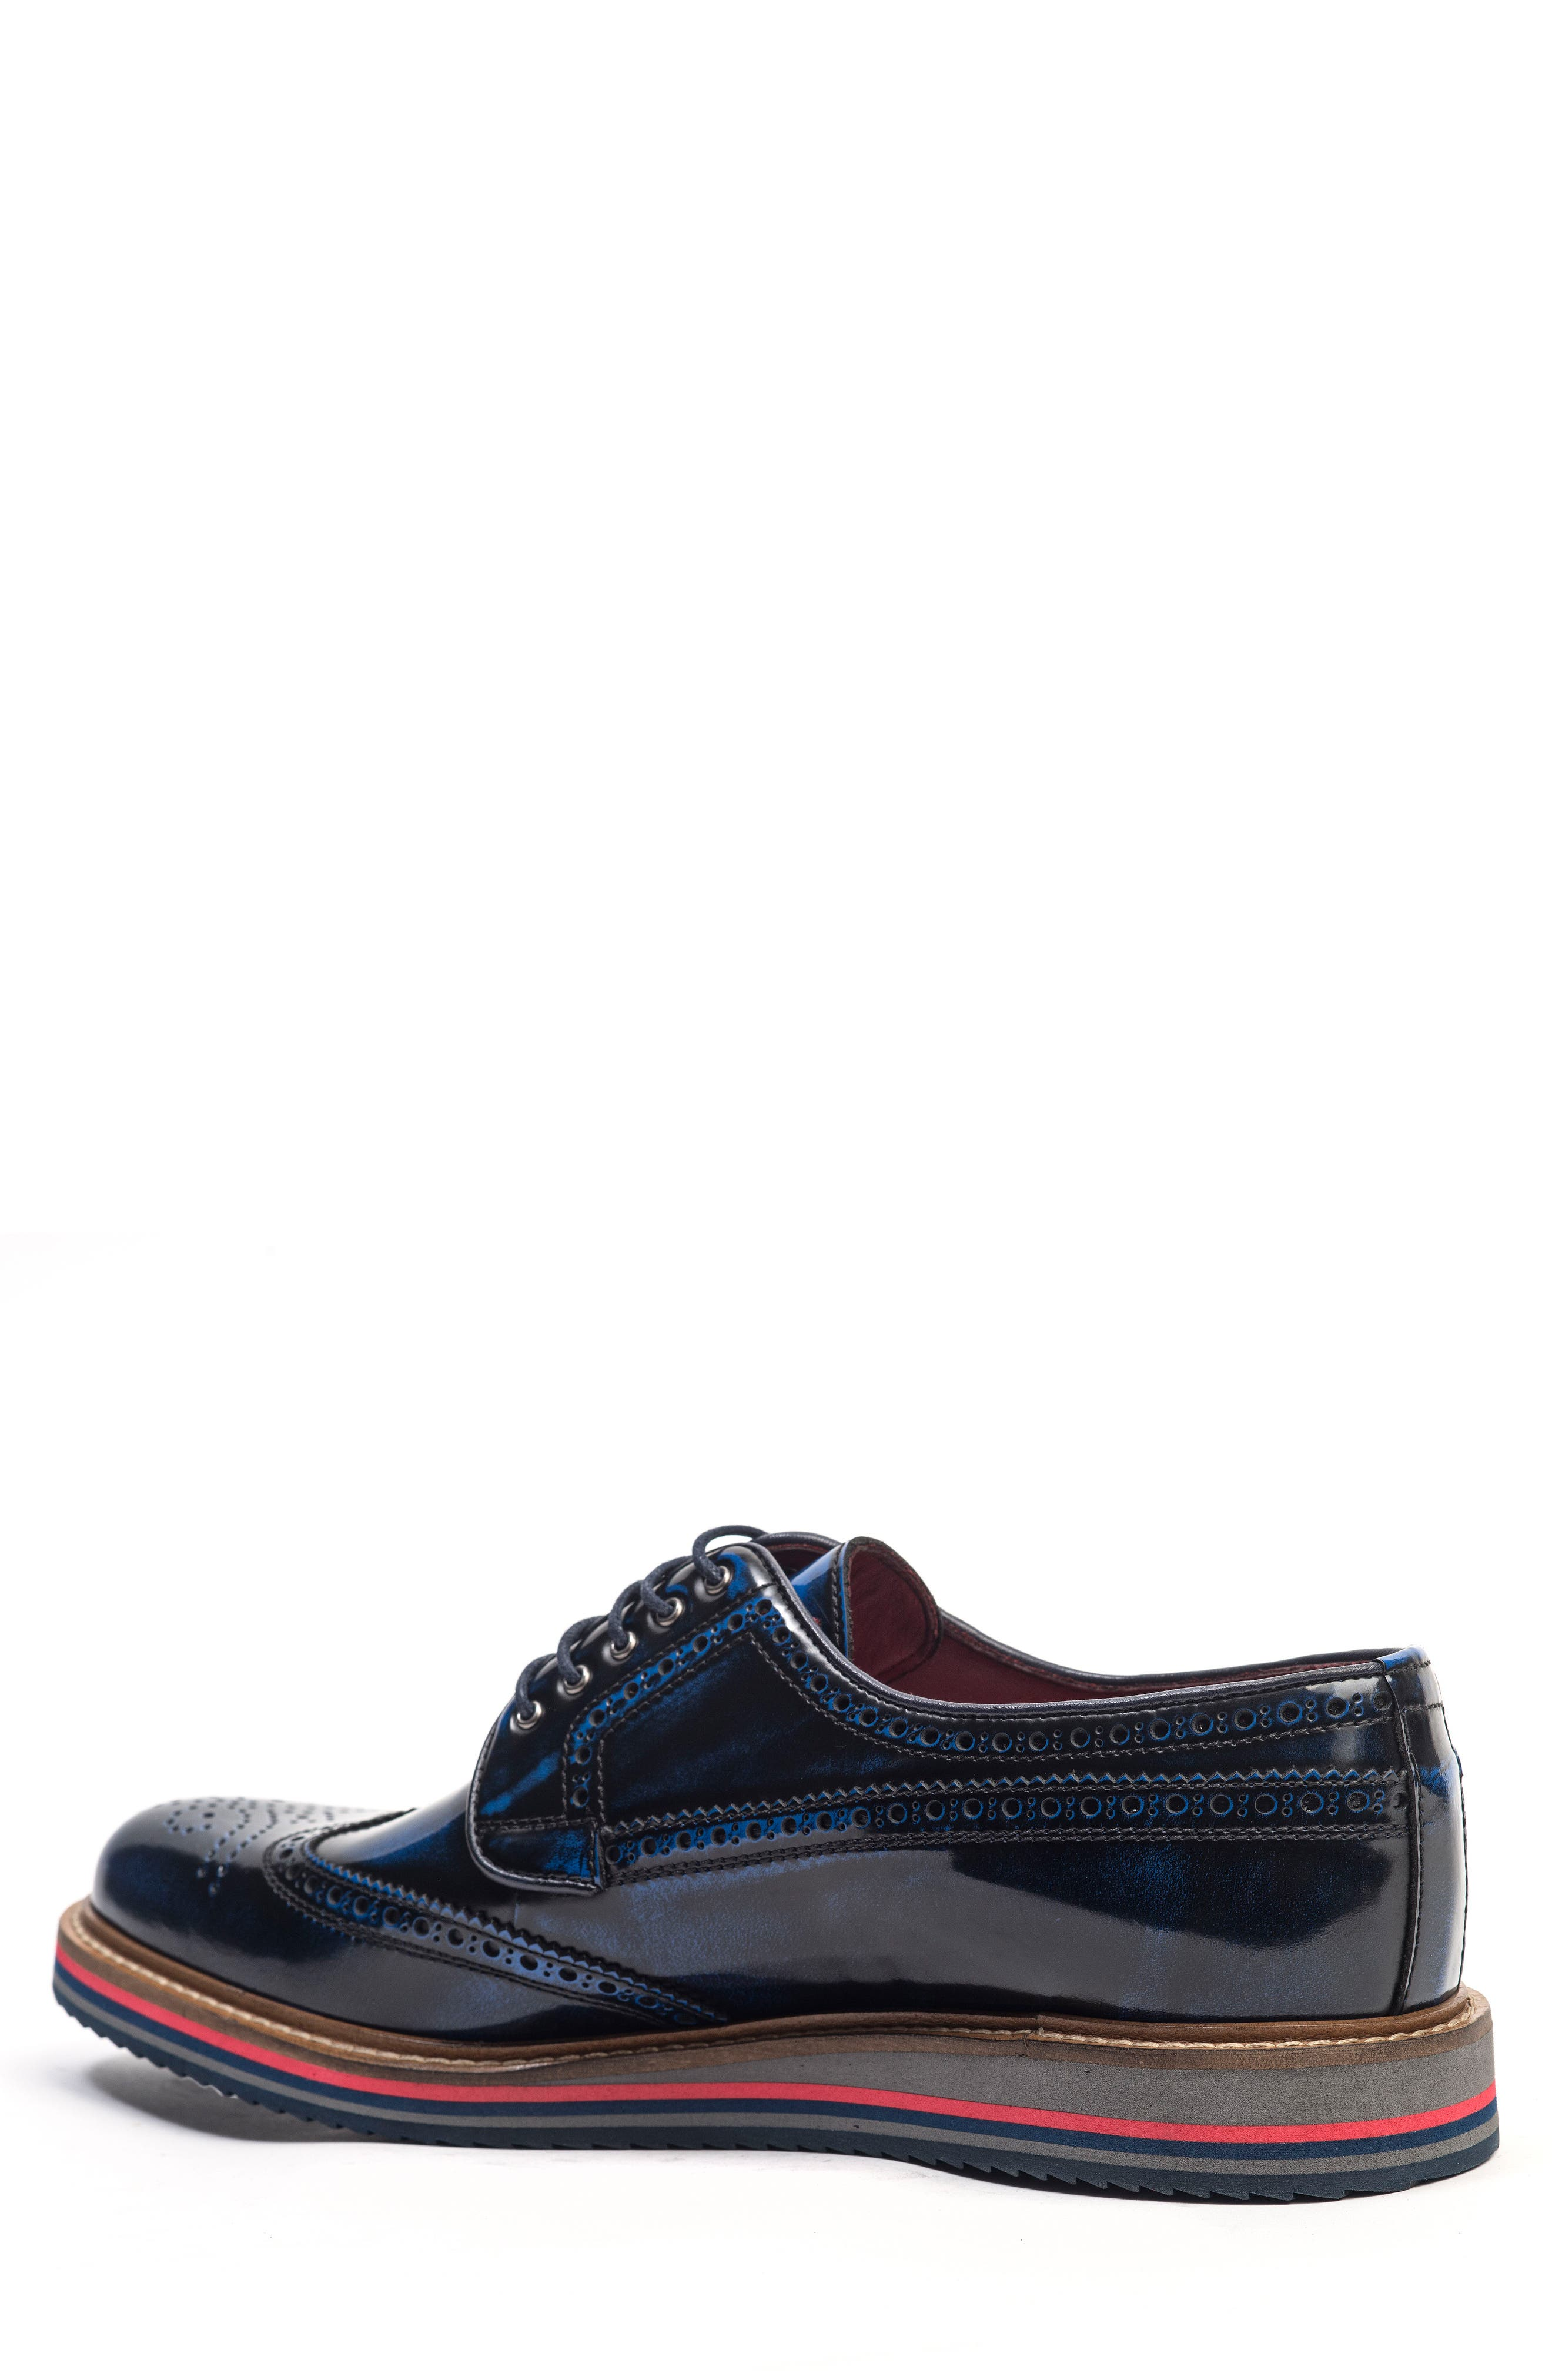 Alternate Image 2  - Jared Lang Doc Sandwich Sole Wingtip Oxford (Men)